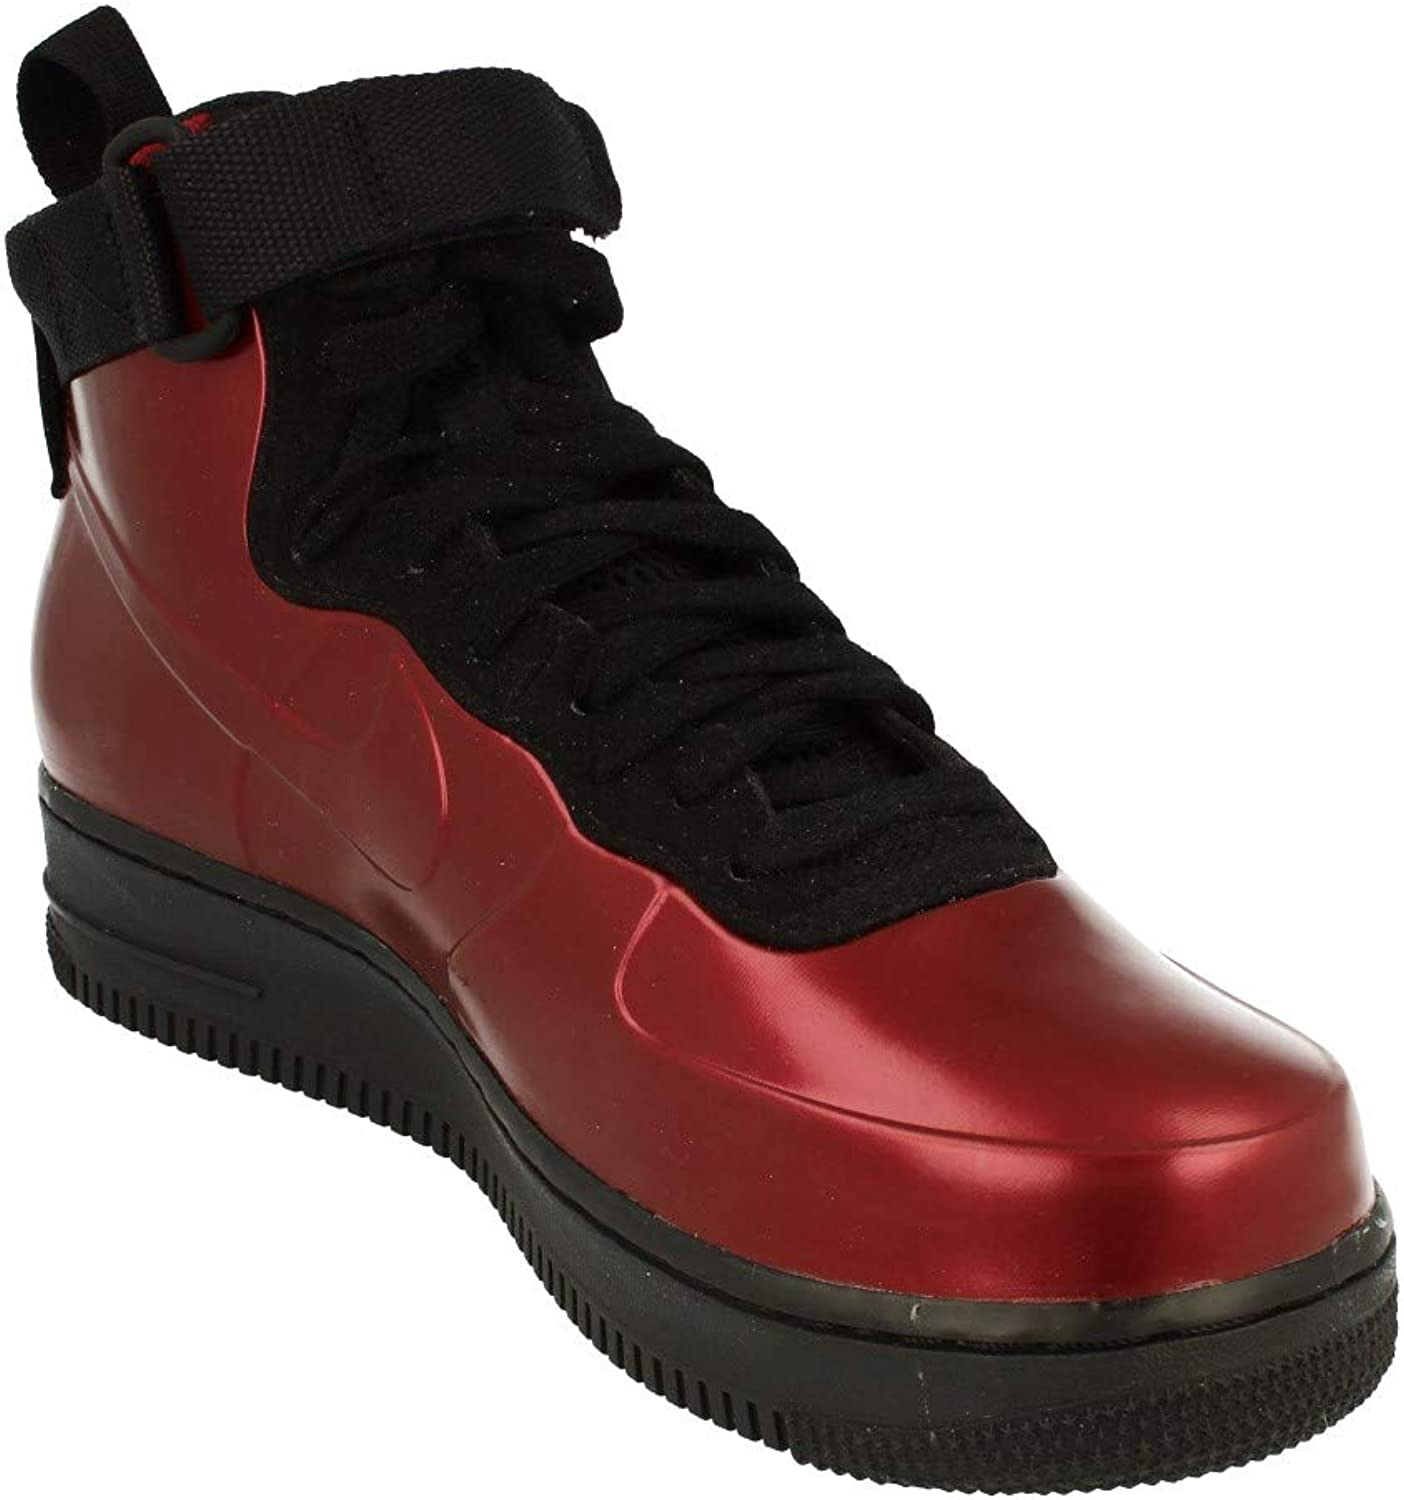 Nike Air Force 1 Foamposite Cup Chaussures de Fitness Homme